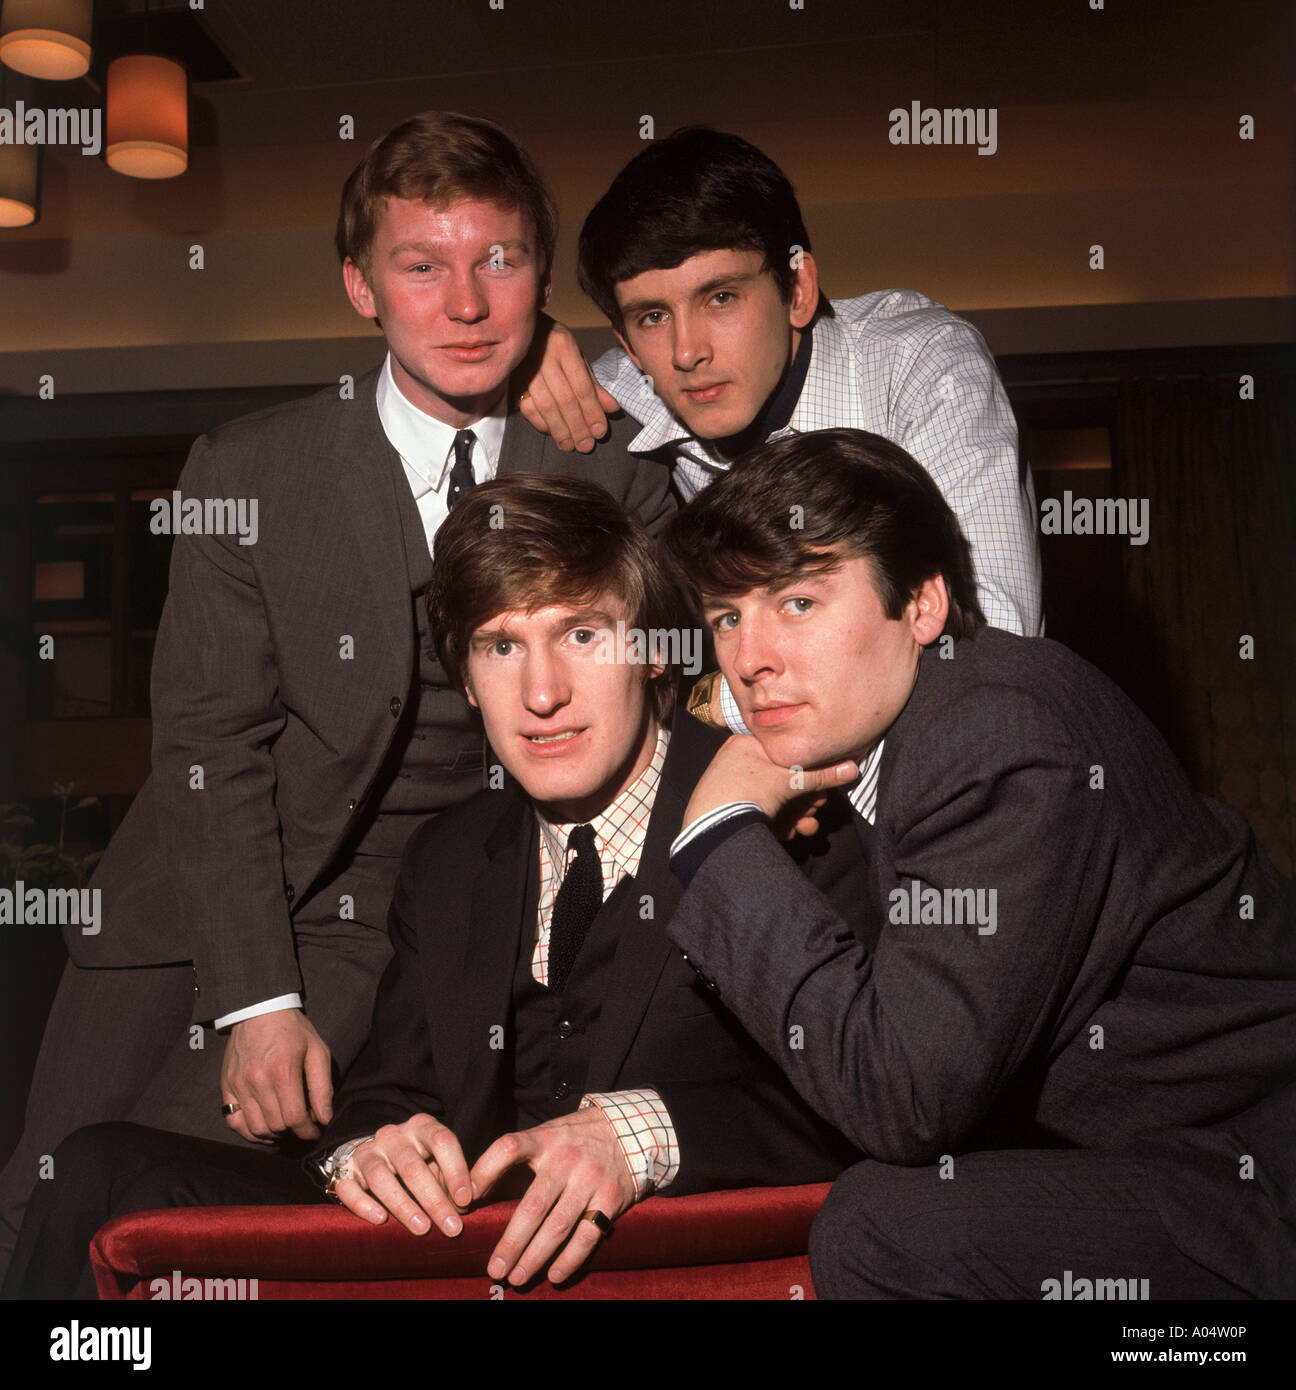 SEARCHERS UK pop group in 1964. See Description below for names. Photo Tony Gale - Stock Image